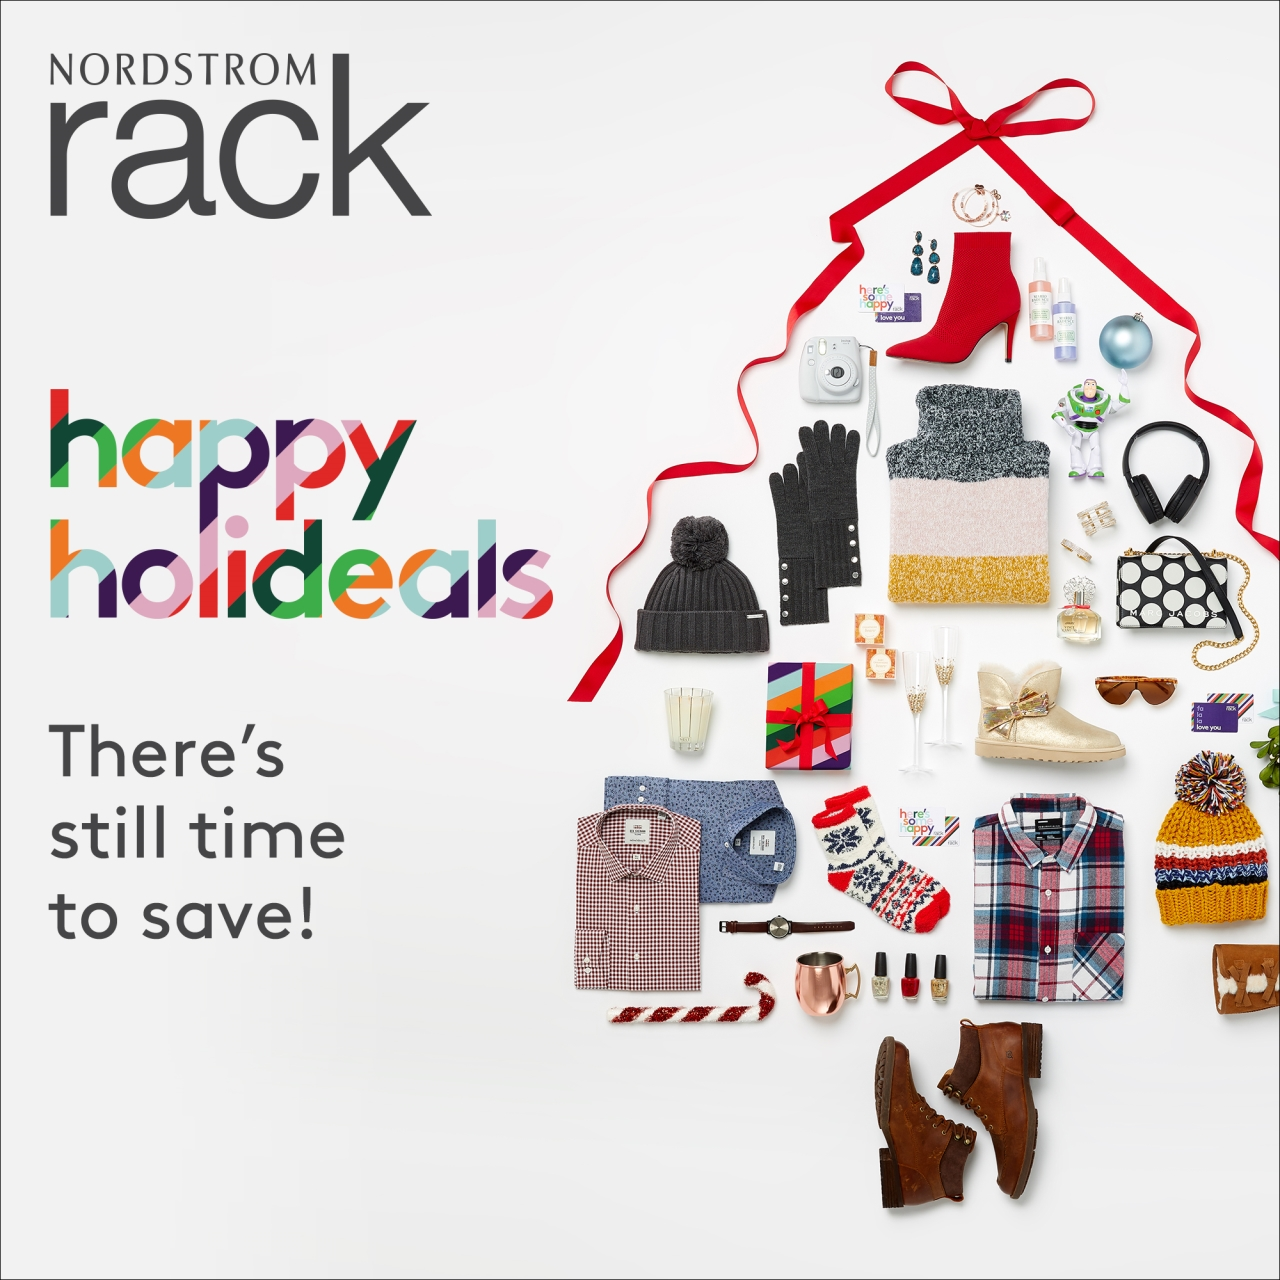 Hurry to Nordstrom Rack now for all the gifts on your list! from Nordstrom Rack